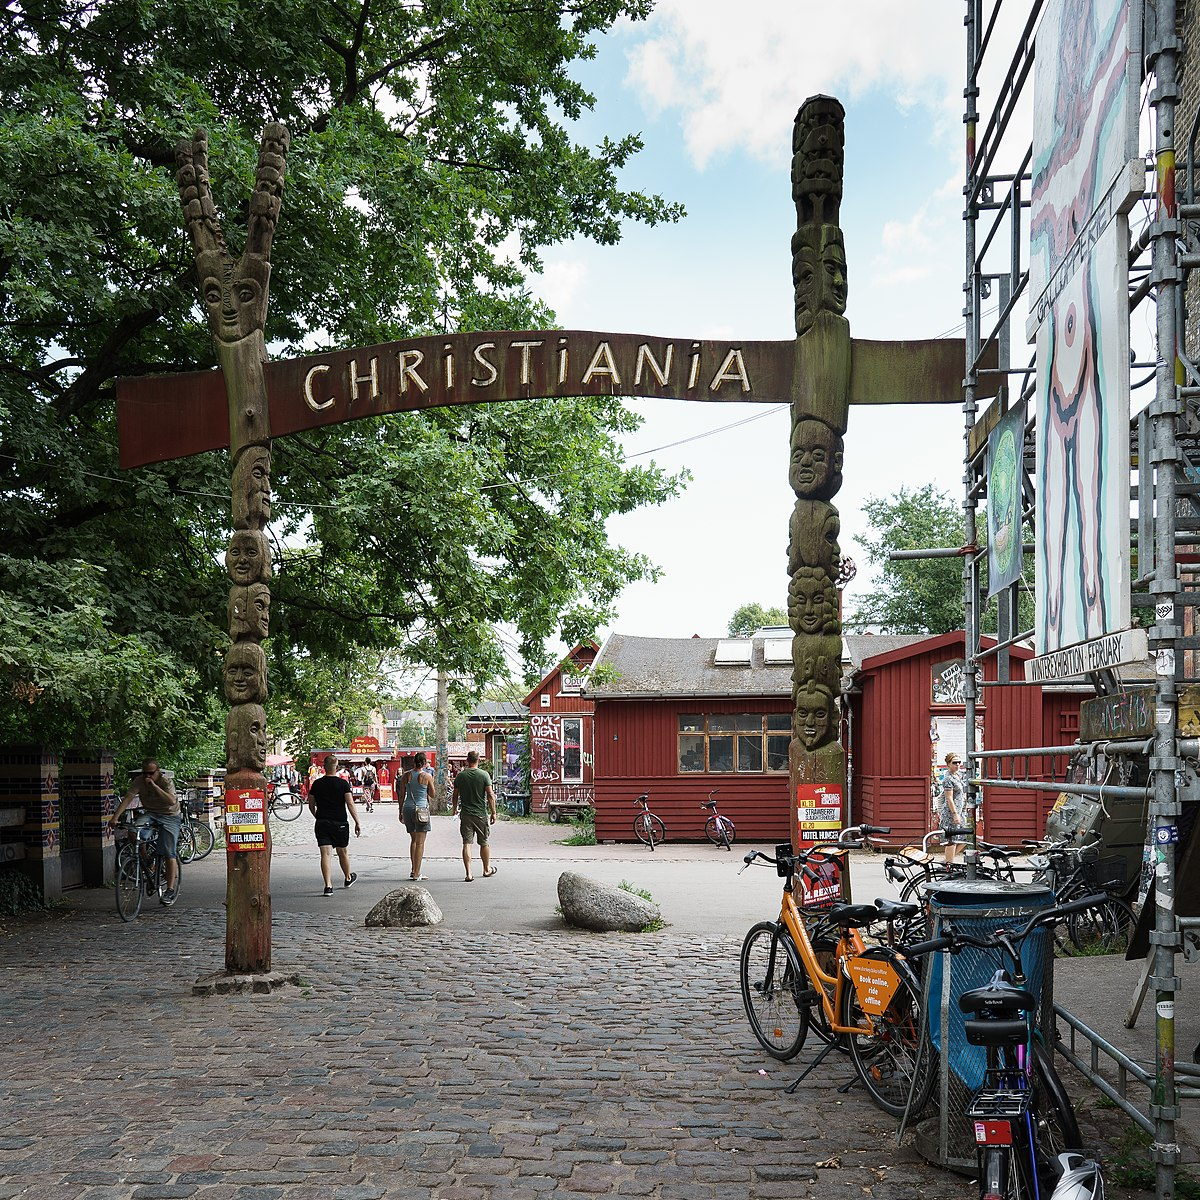 Christiania in.jpg